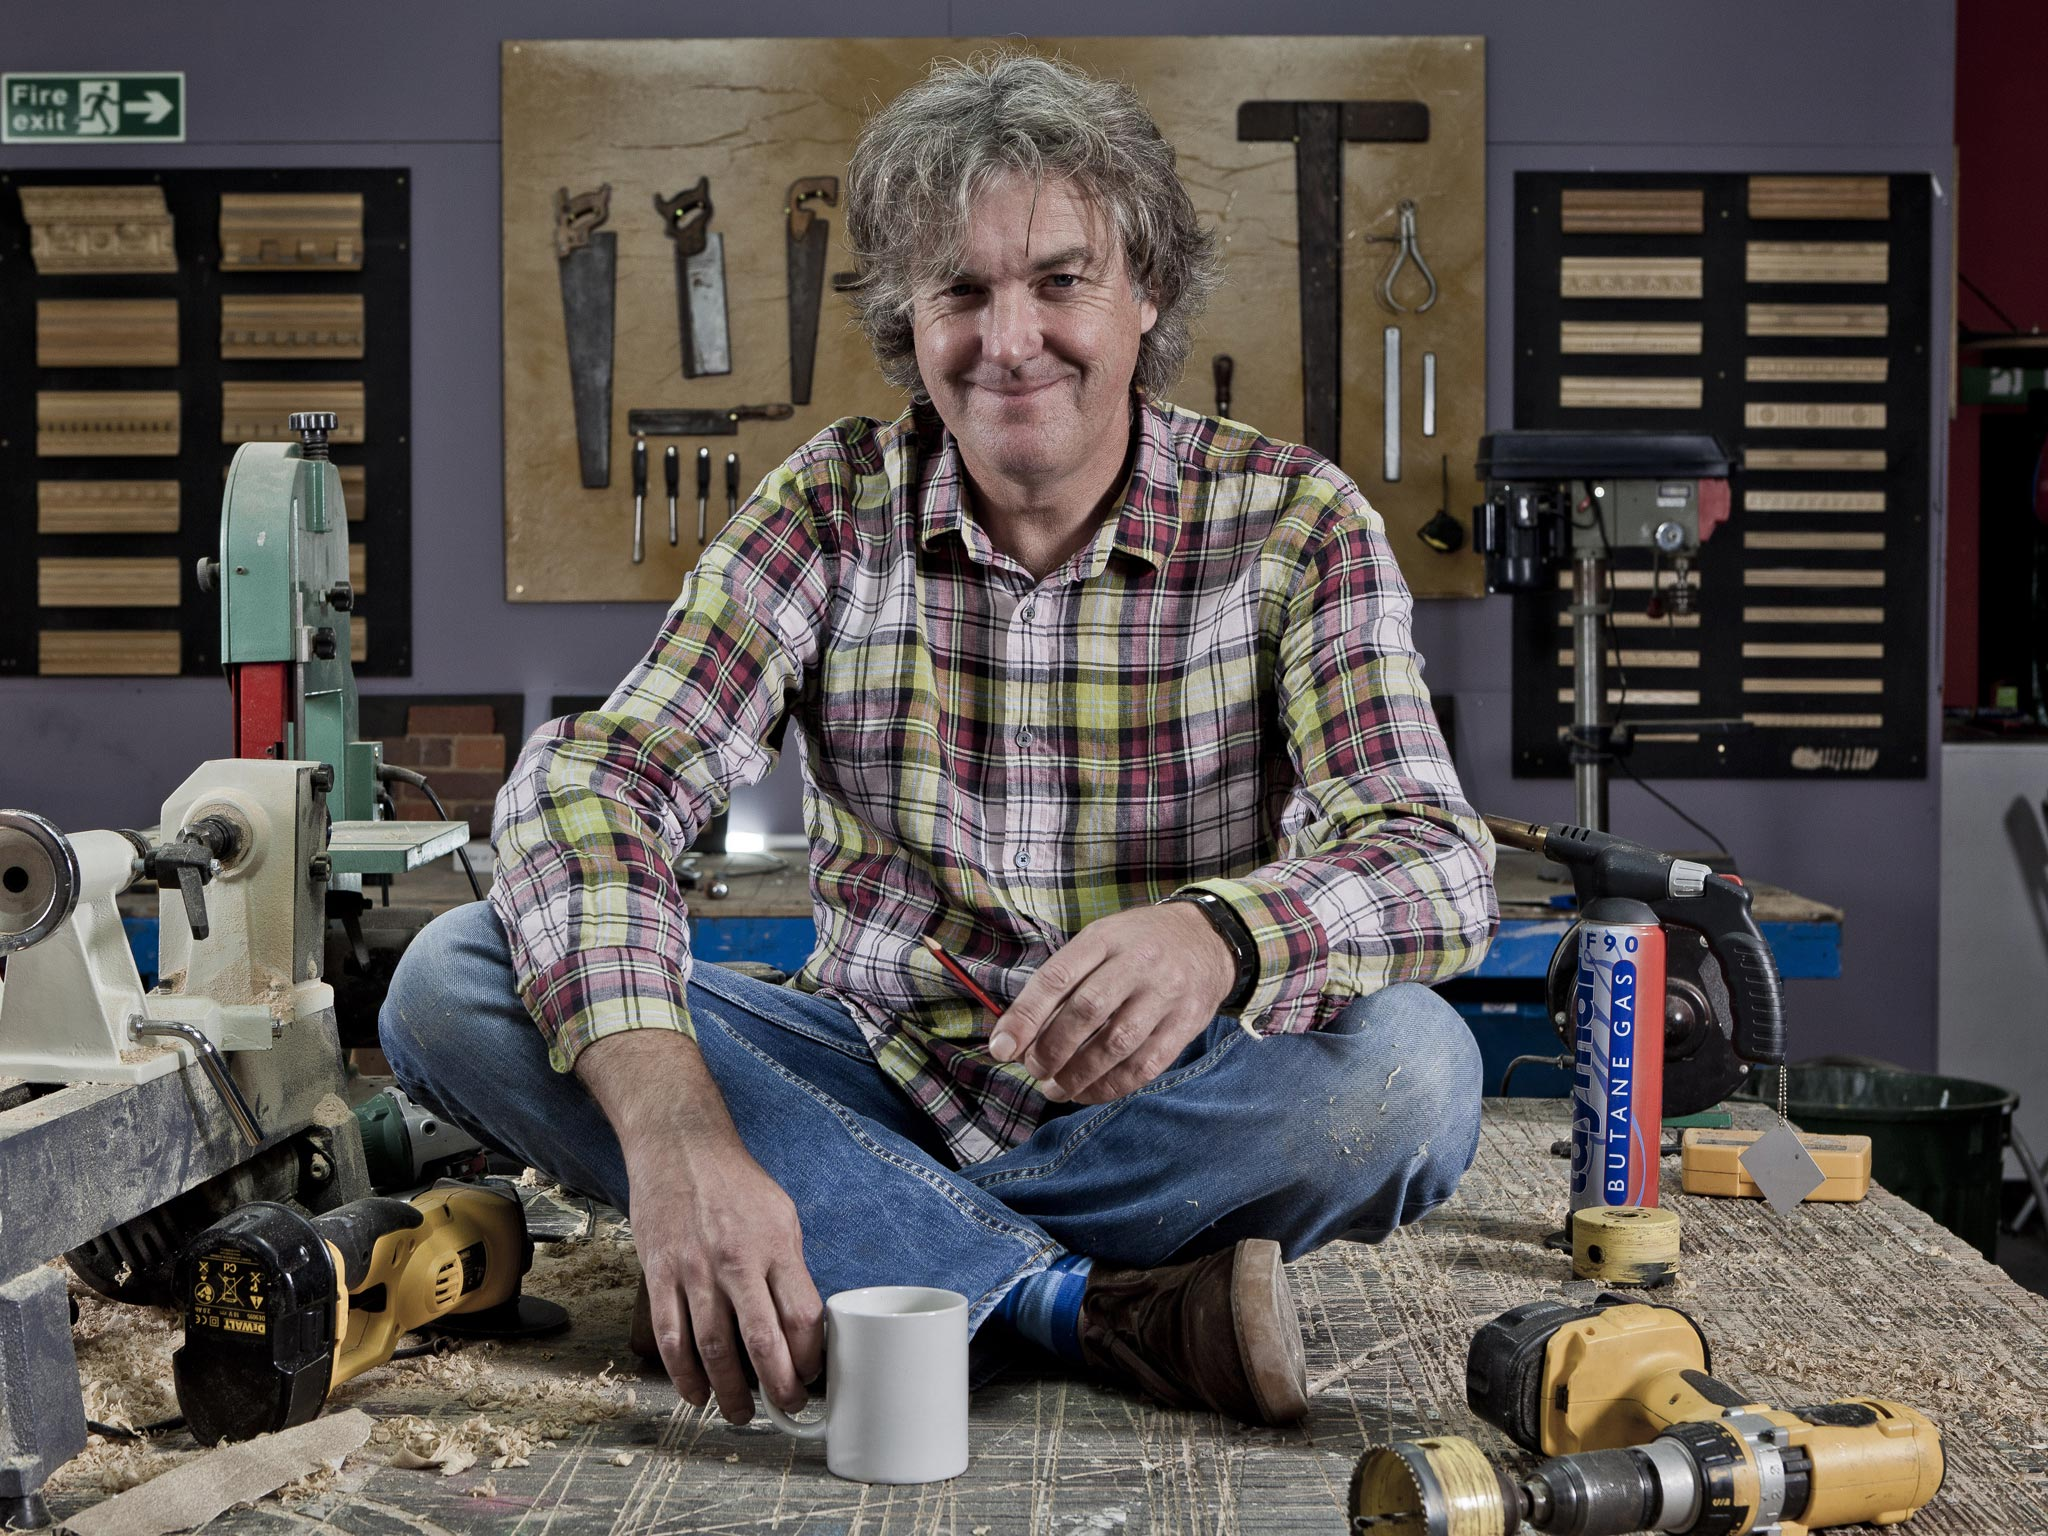 james may bugattijames may the reassembler, james may instagram, james may cars, james may behind the wheel, james may young, james may net worth, james may wiki, james may toy stories, james may height, james may wife, james may brother, james may lada niva, james may watches, james may's lego house, james may vs lada niva, james may family, james may bugatti, james may garage, james may facebook, james may man lab